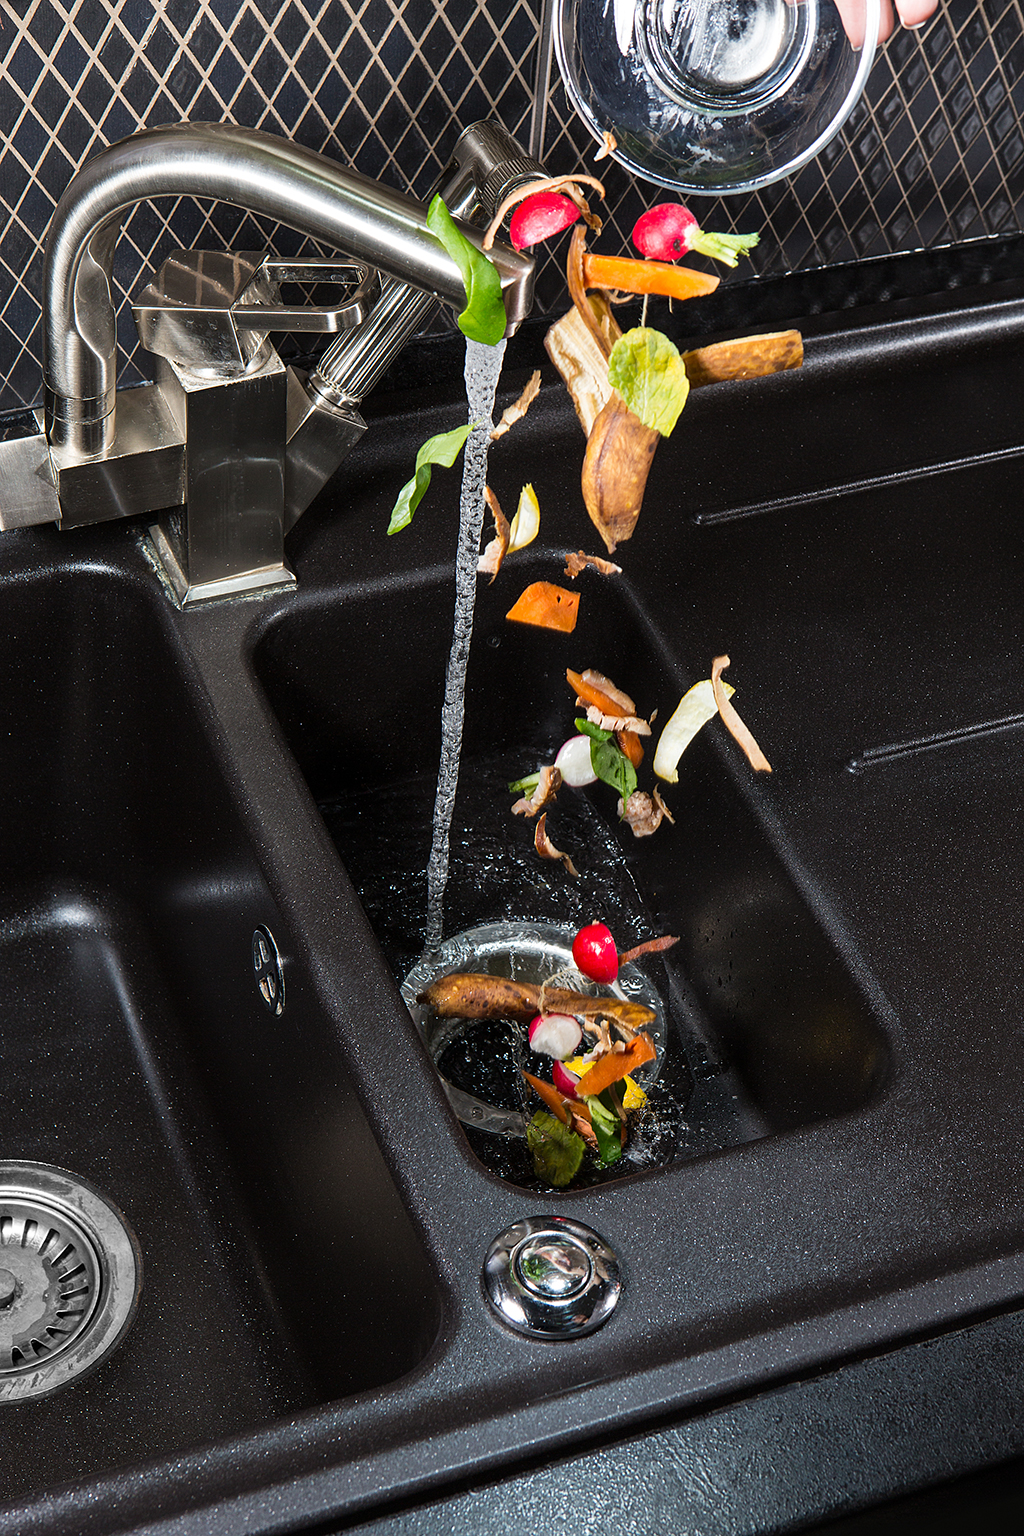 5 Ways to Keep Your Garbage Disposal Running Smoothly